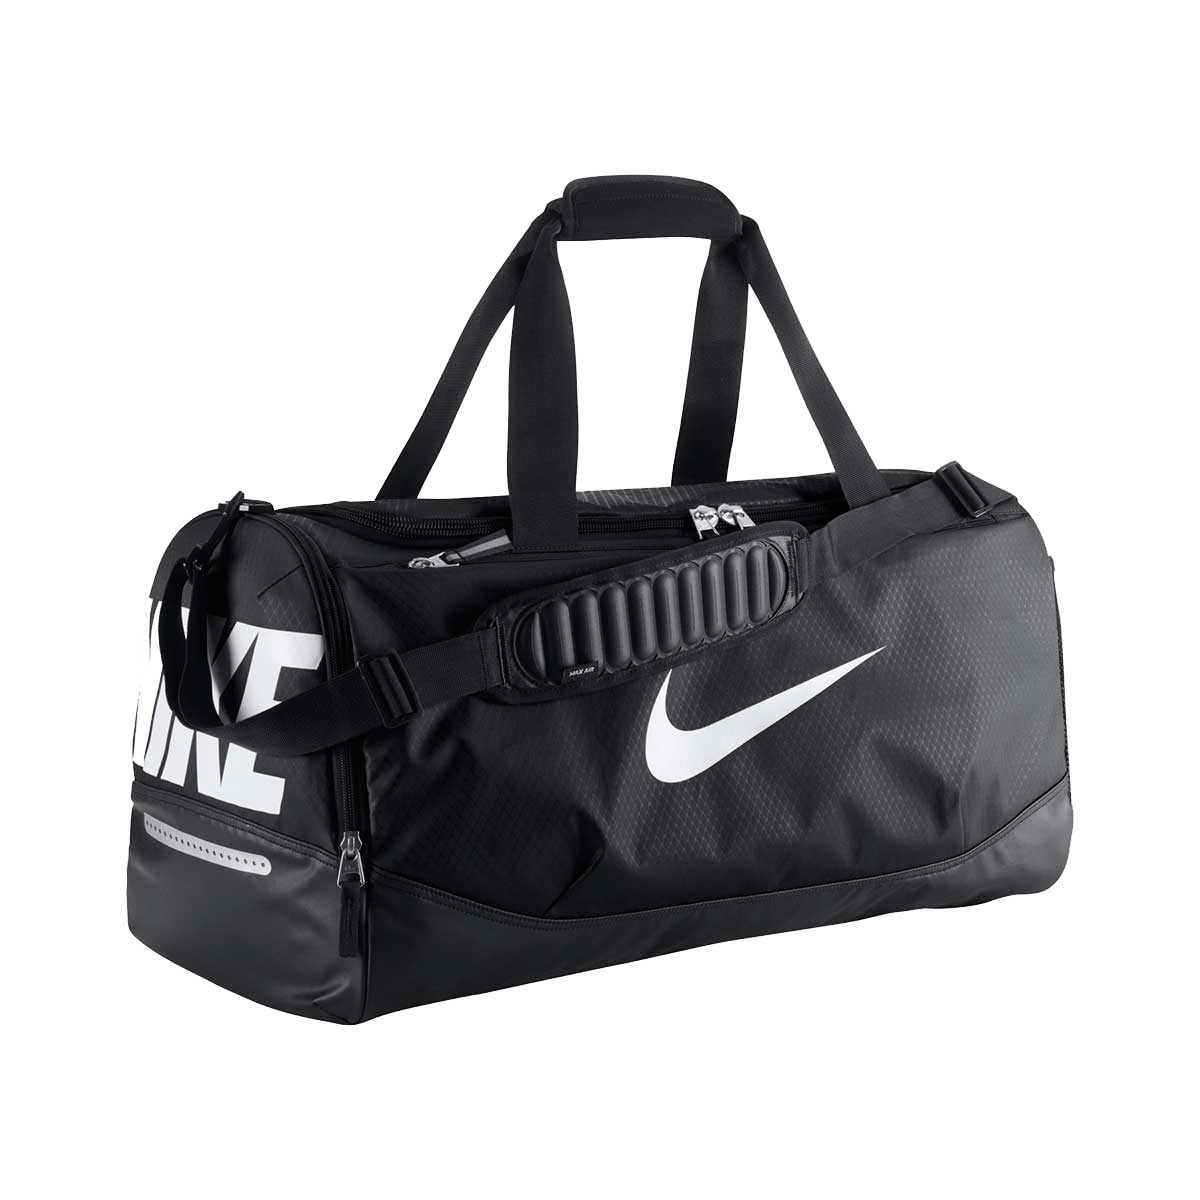 Duffle Bags, Accessories, Buy, Nike, Nike Team Training Max Air Medium Bag